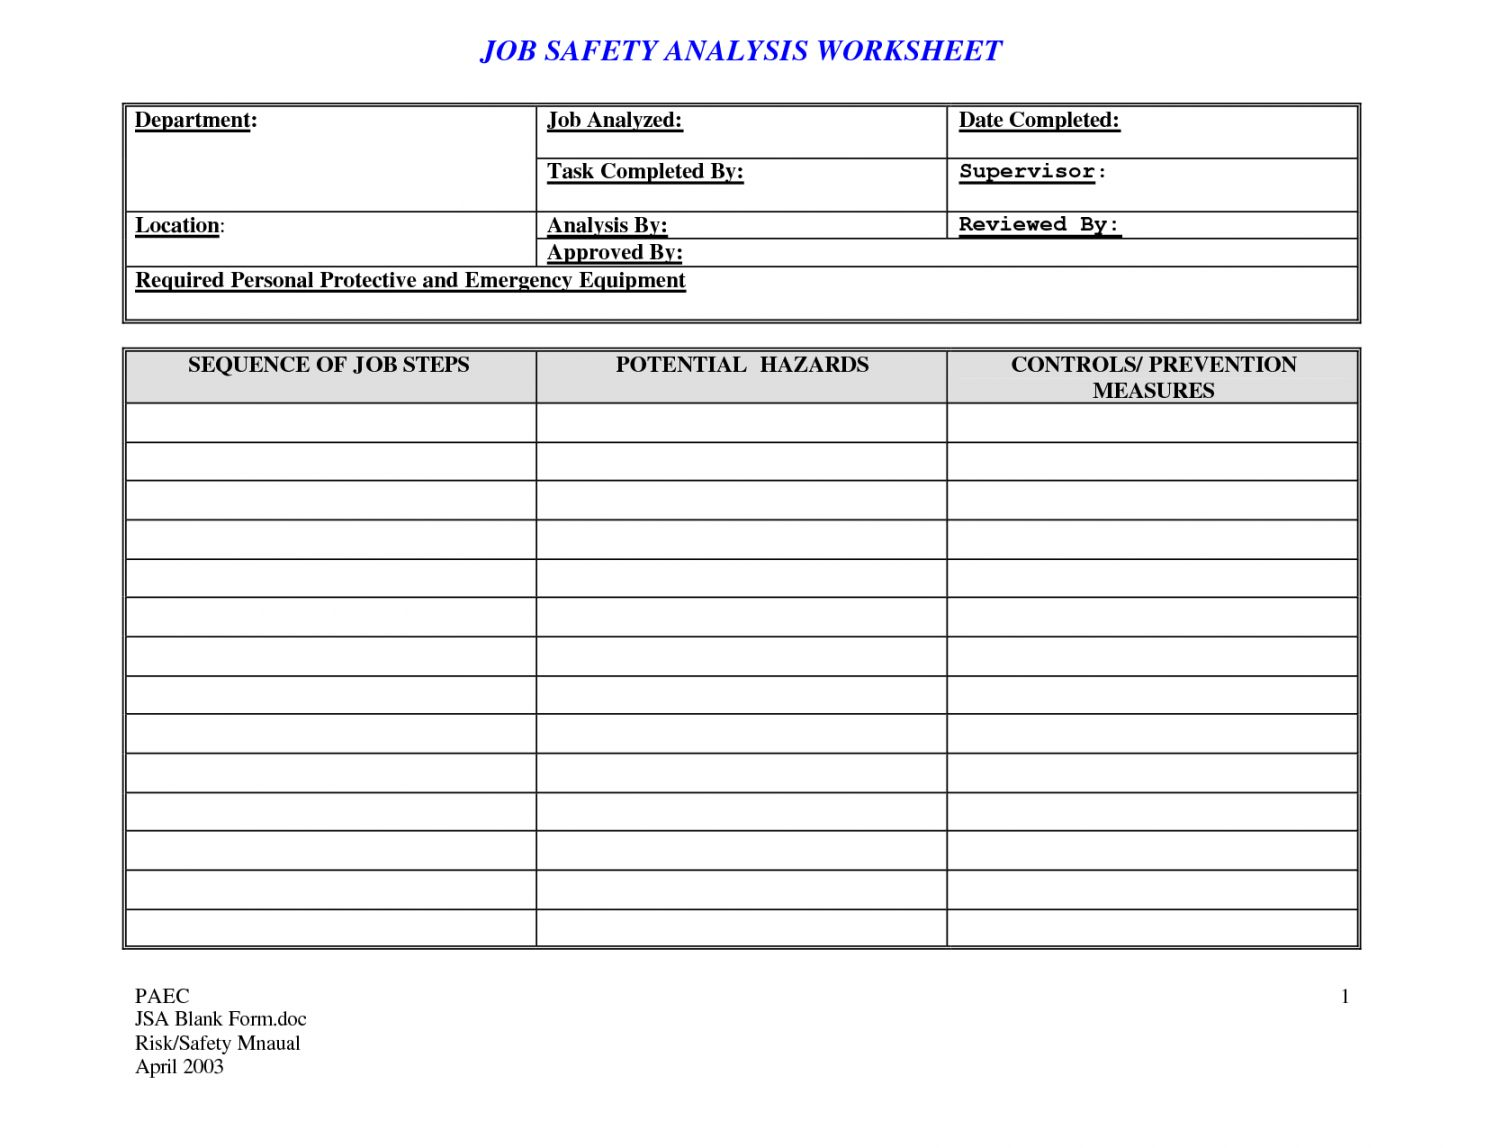 Get our example of job safety analysis worksheet template